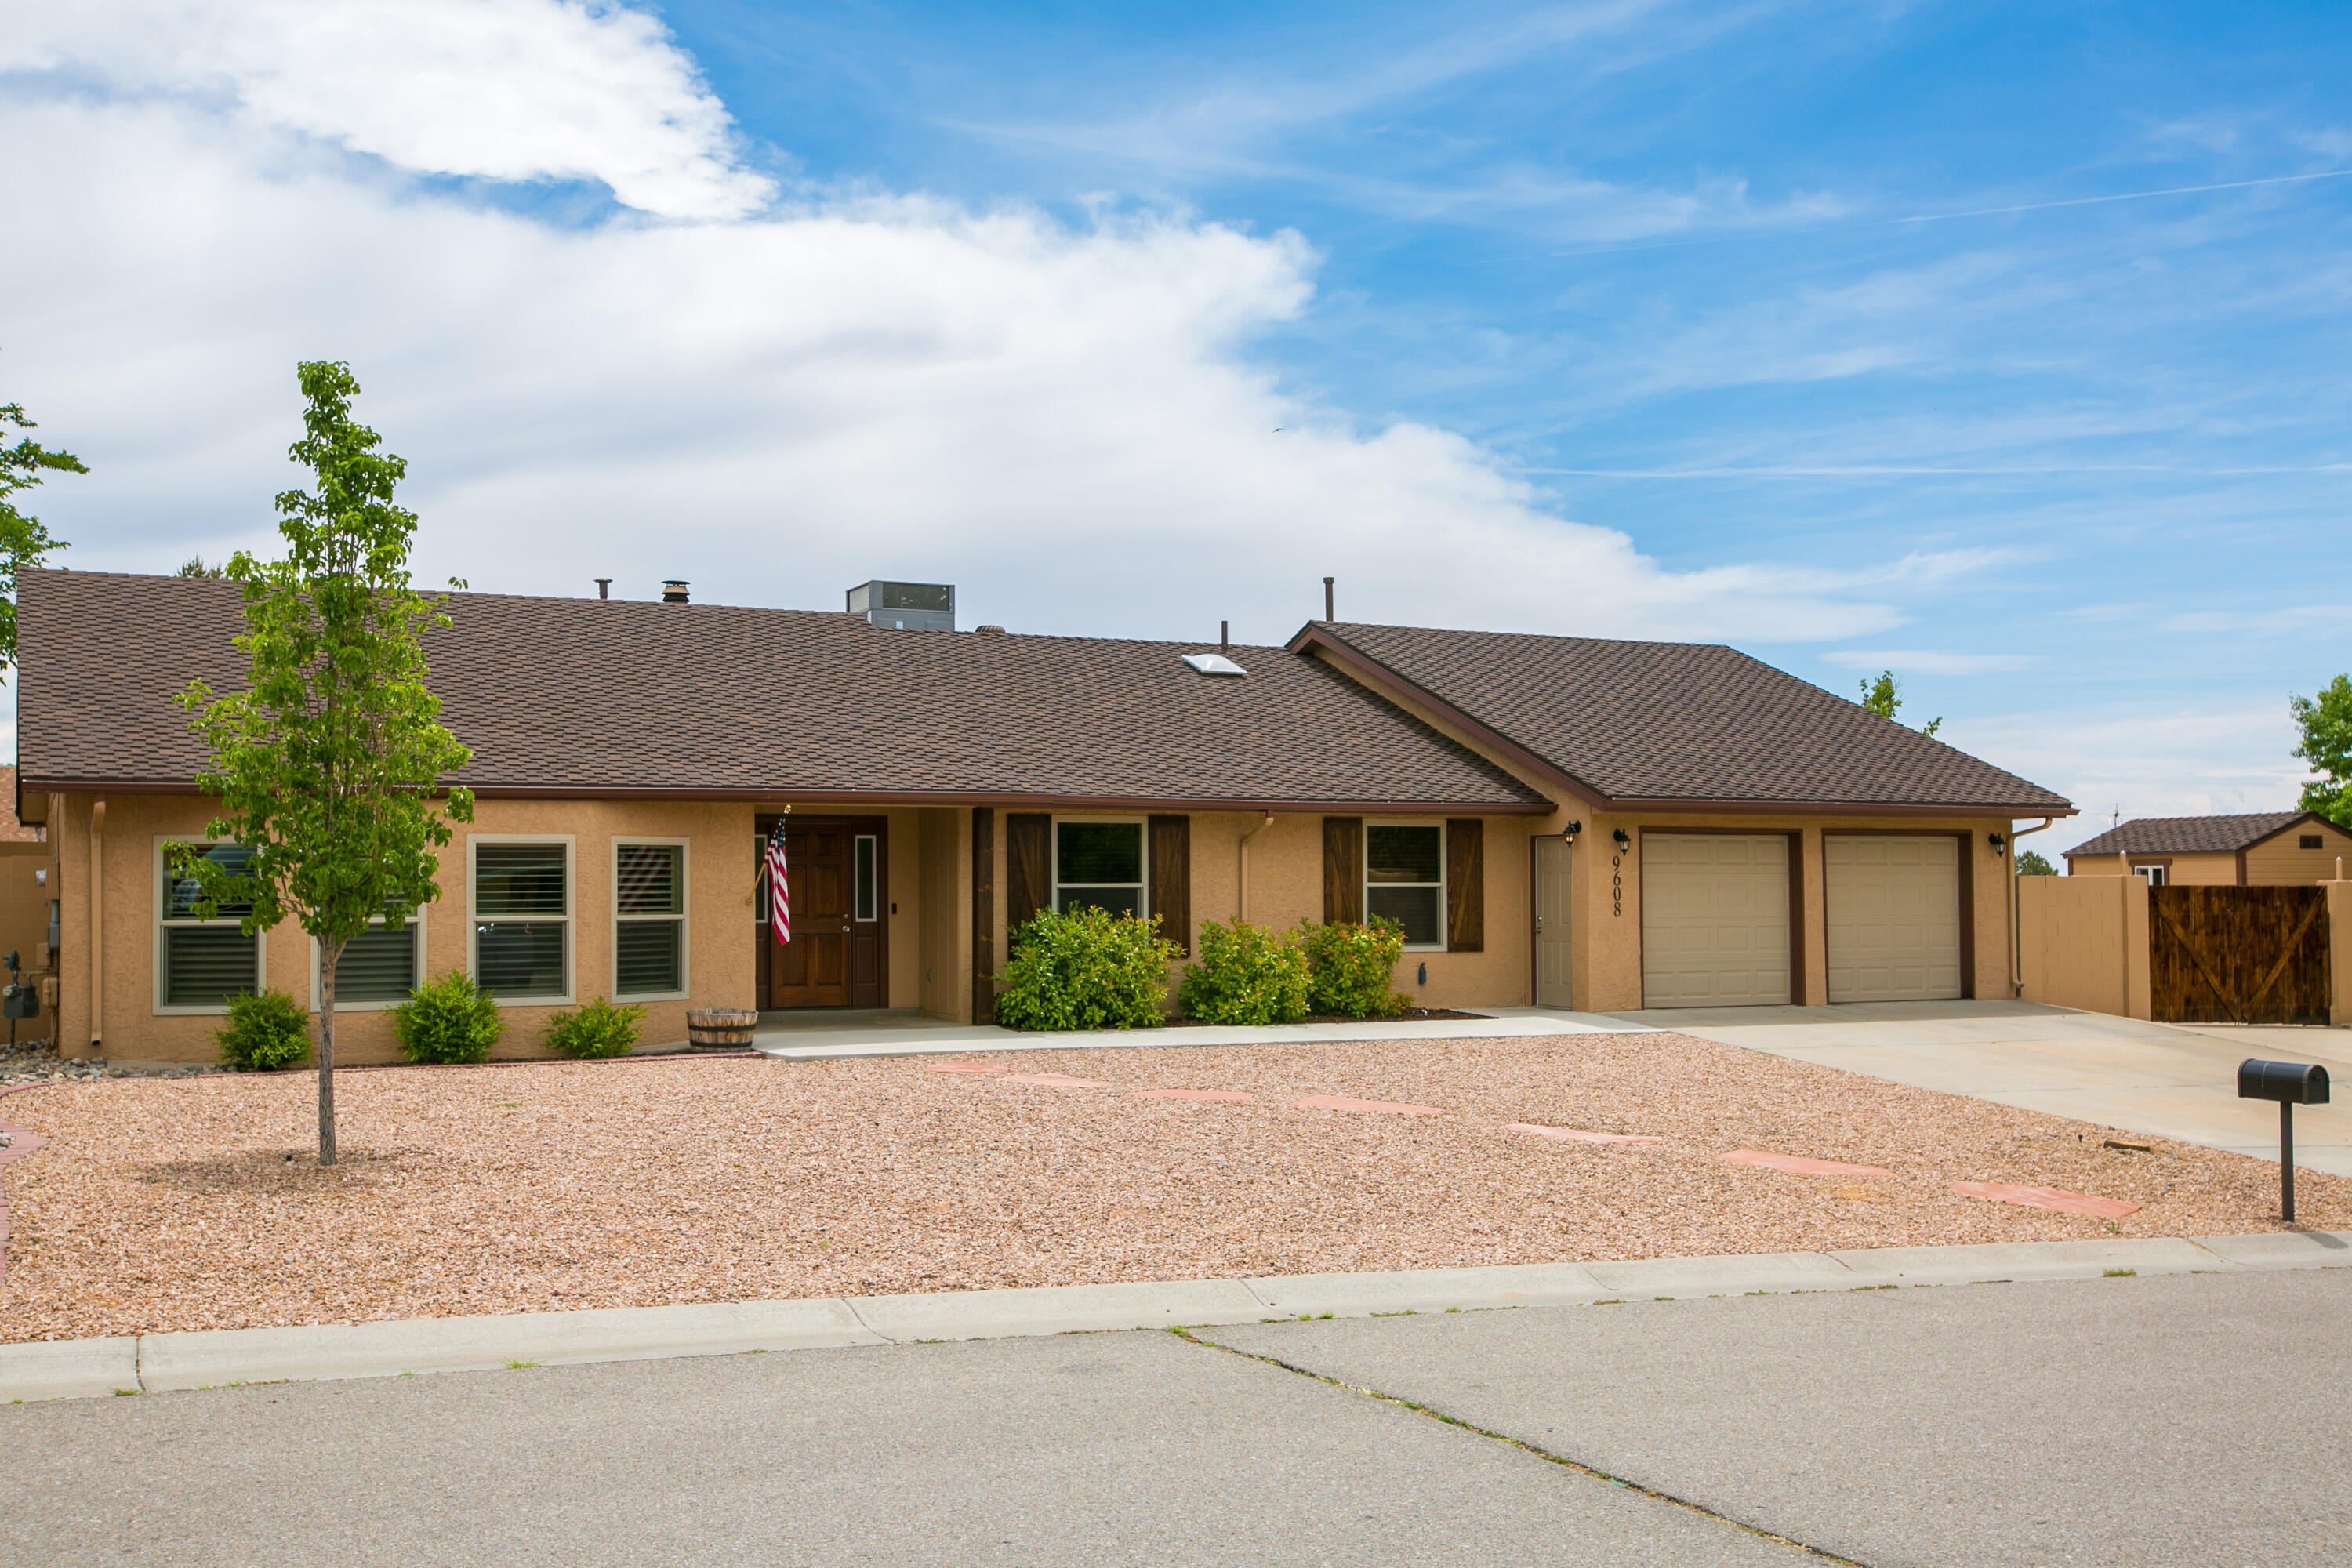 Don't miss this fully renovated NE ABQ ranch style home on a quiet cul-de-sac.  This 3 BR, 2 BA, 2,174 SF home features warm touches including wood laminate floors, shiplap accent walls, wood blinds, sliding barn doors & brick fireplace. Stylish updated kitchen offers stainless appliances, large pantry w/additional storage.  Exceptionally large primary bedroom with private bathroom suite, his & her closets, separate AC/heating, & French-door access to an outdoor patio.  Entertain family & friends outside on the several patio areas, grass yard/garden area & a spiral staircase leading up to a observation deck with stunning mountain and city views.  Plenty of room for toys in the 2-car garage & RV parking area.  Additional updates include central air, new roof (2019), electrical panel, stucco